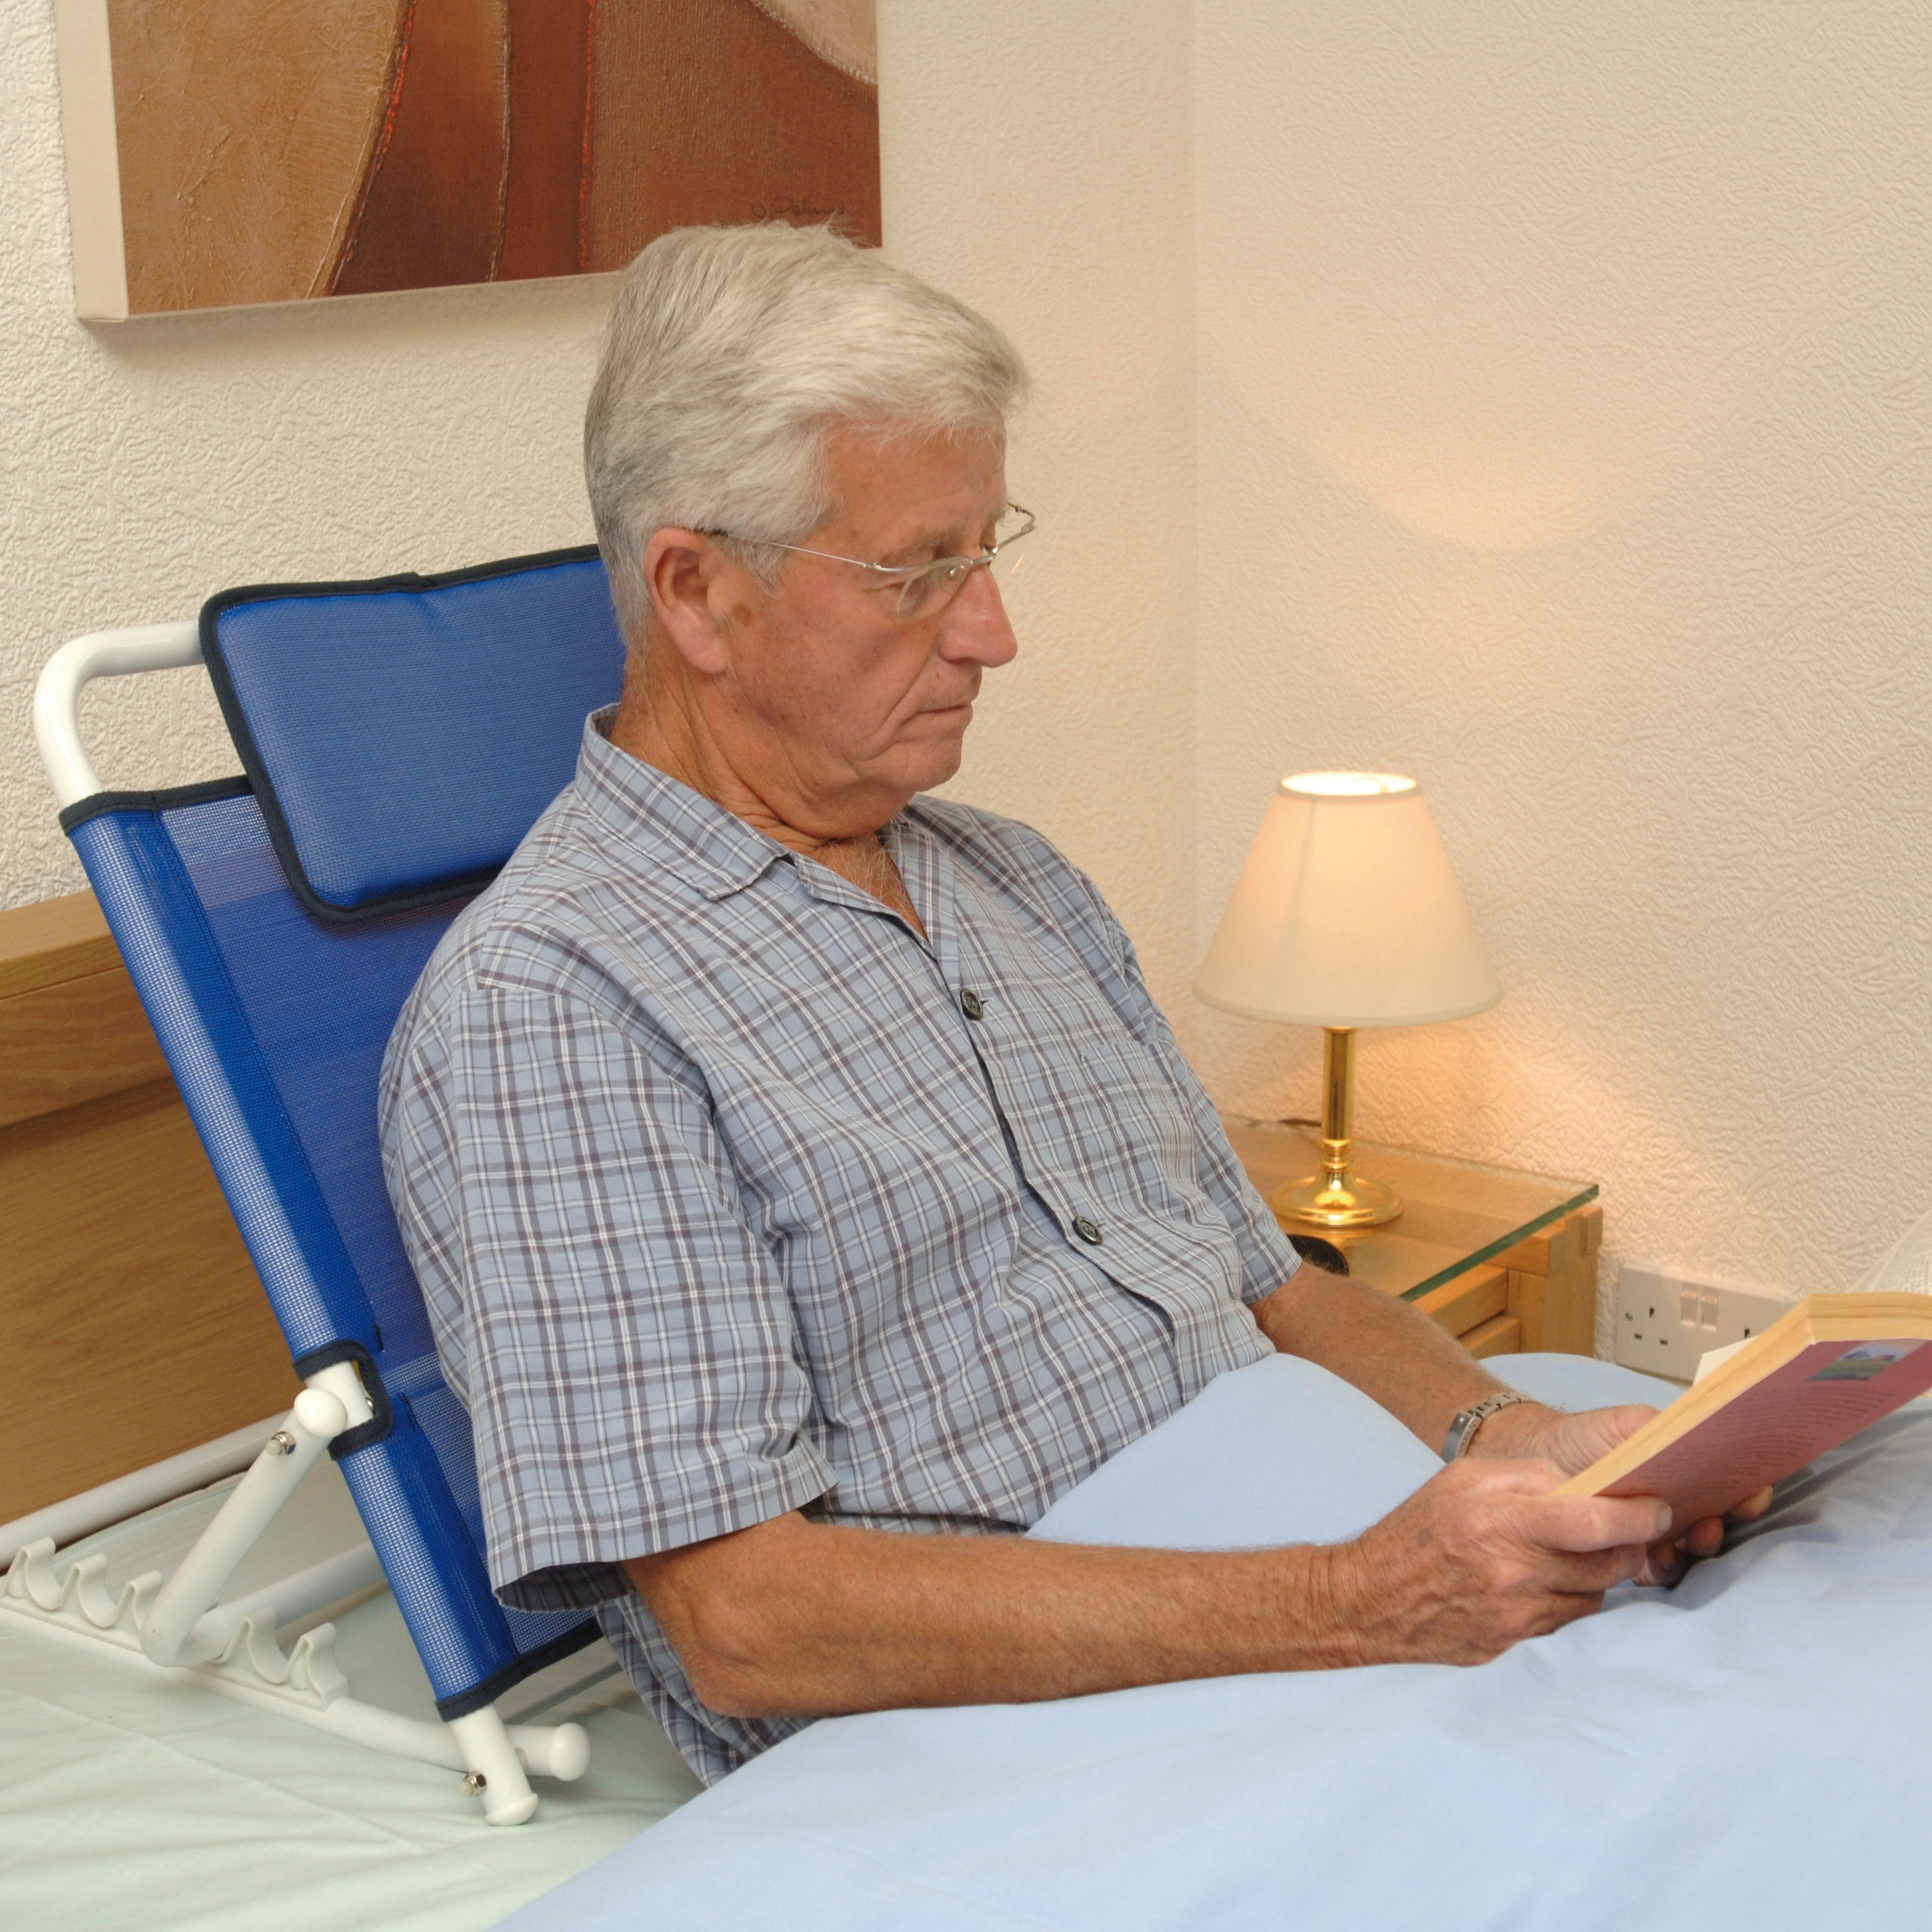 An individual sat up in bed using a back support.